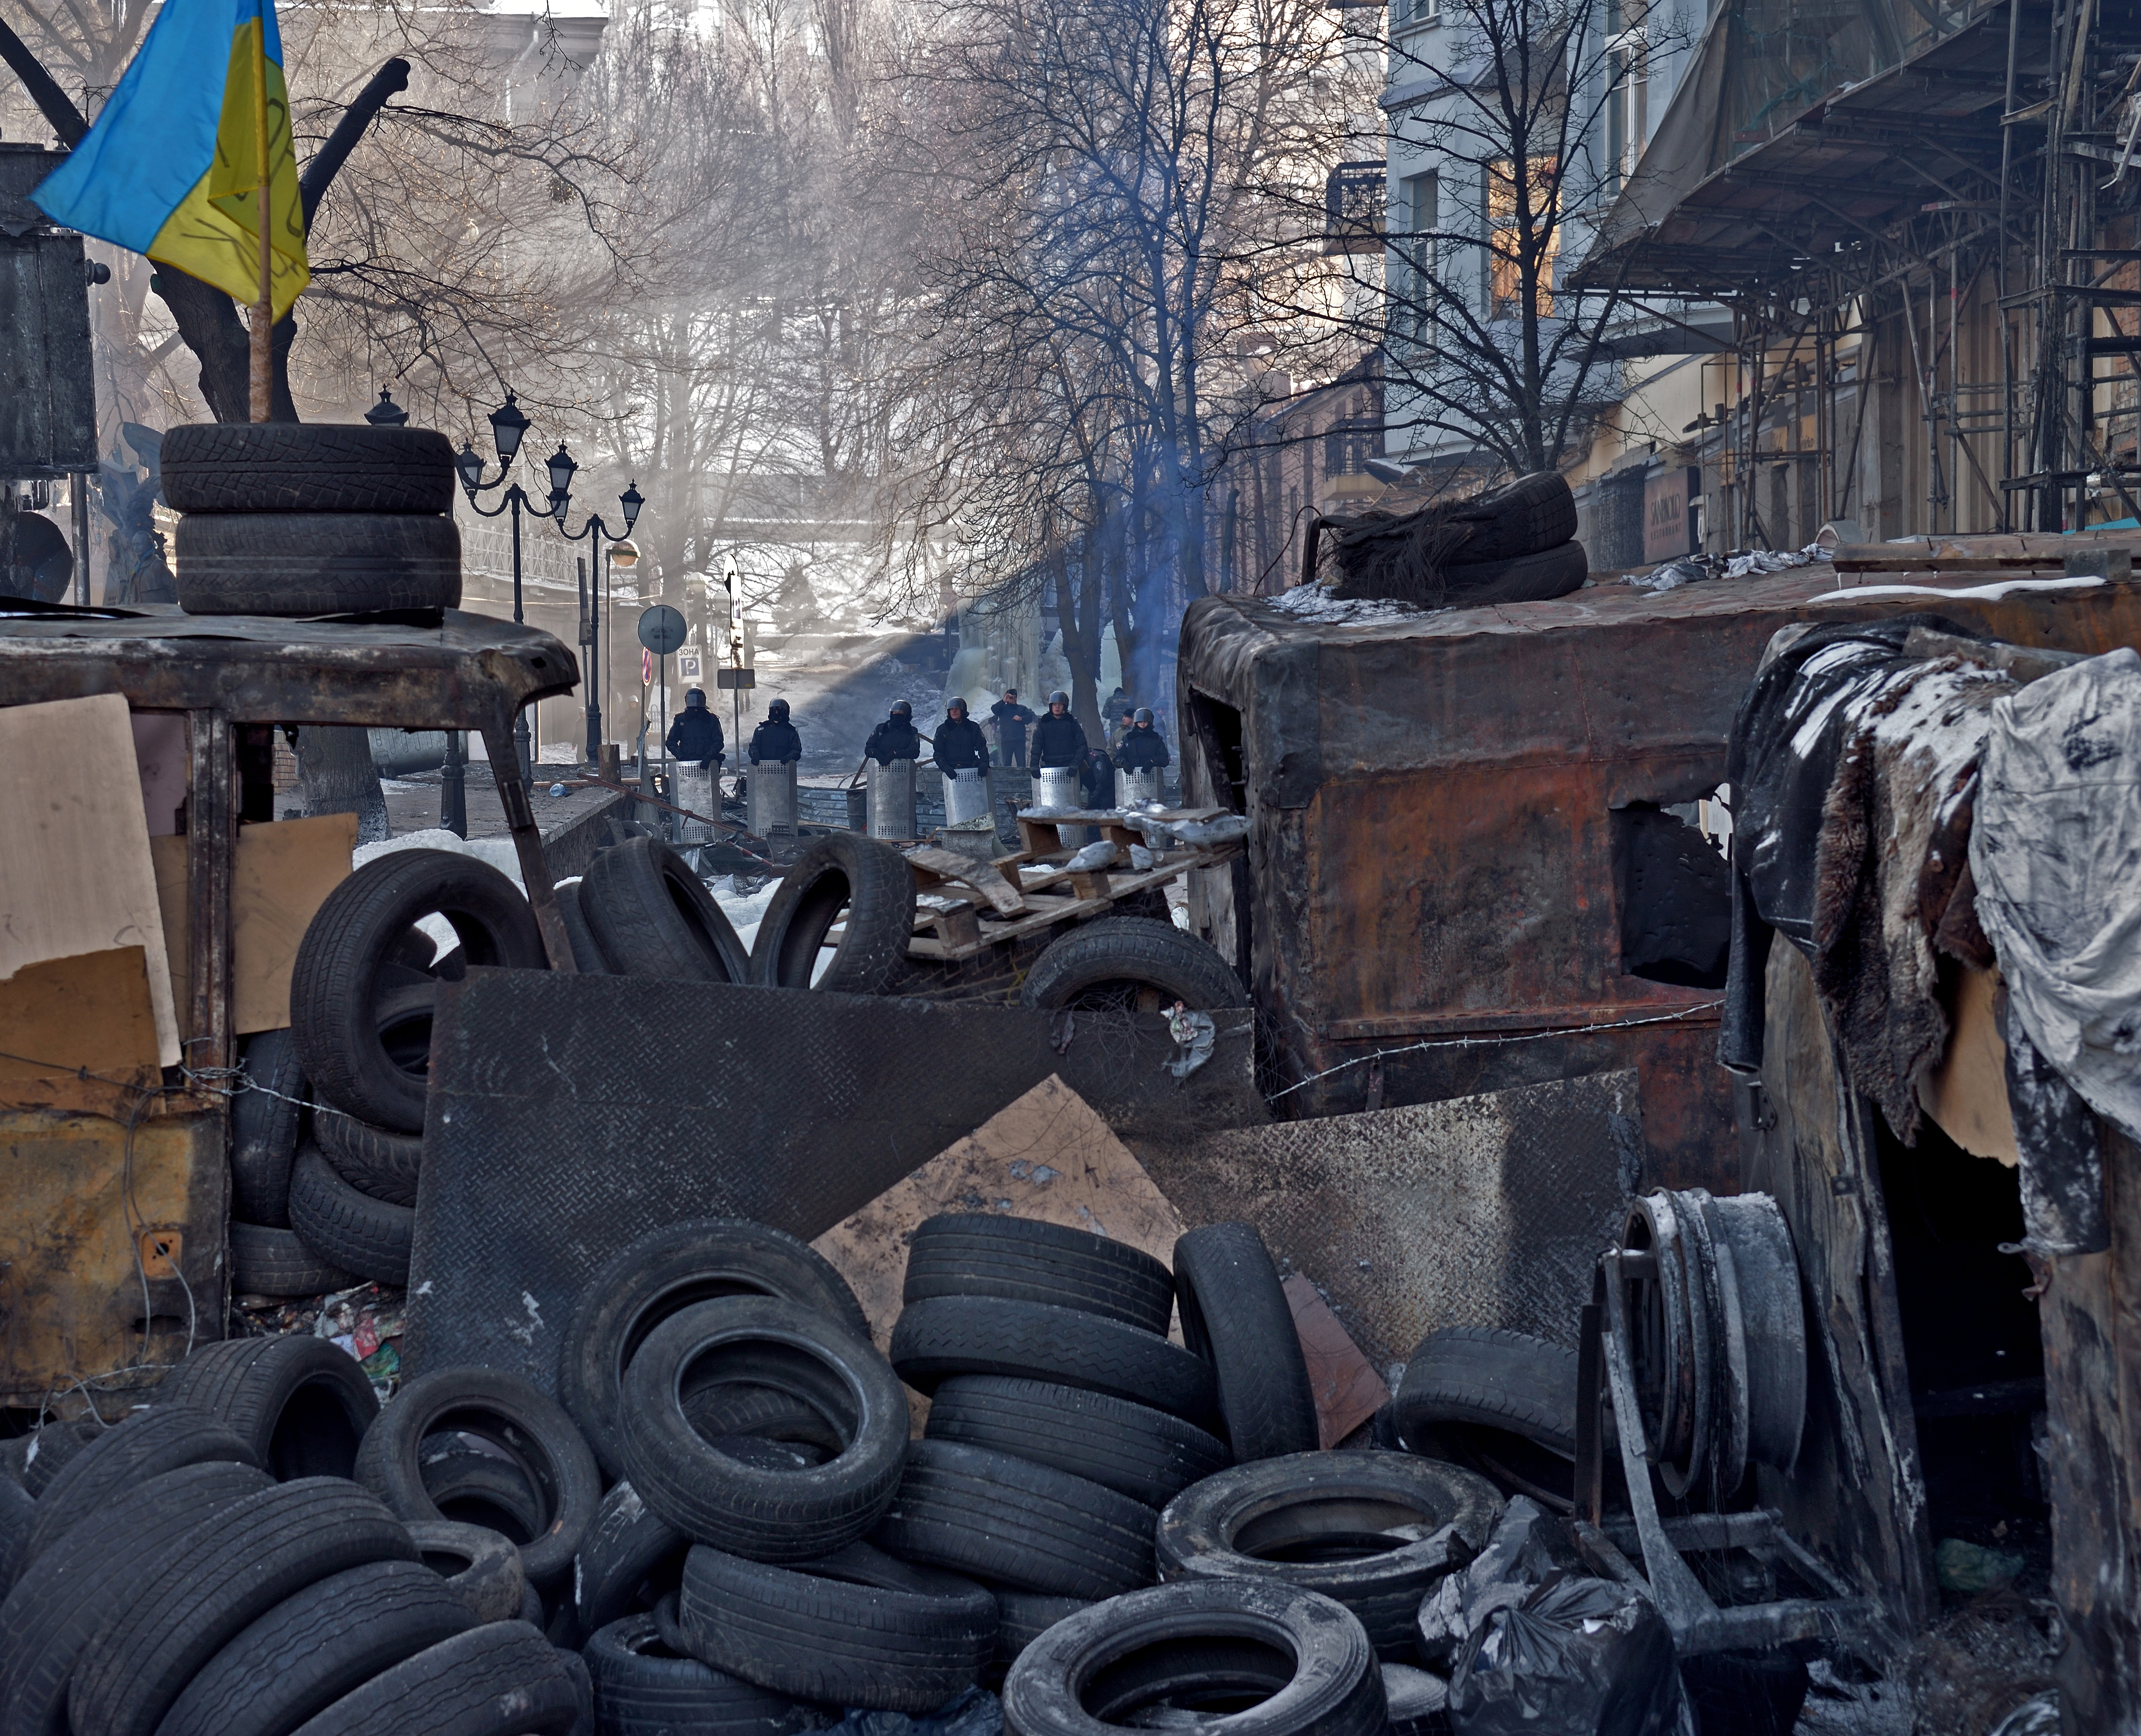 Europe court confirms multiple rights violations by police during 2013 Ukraine protests